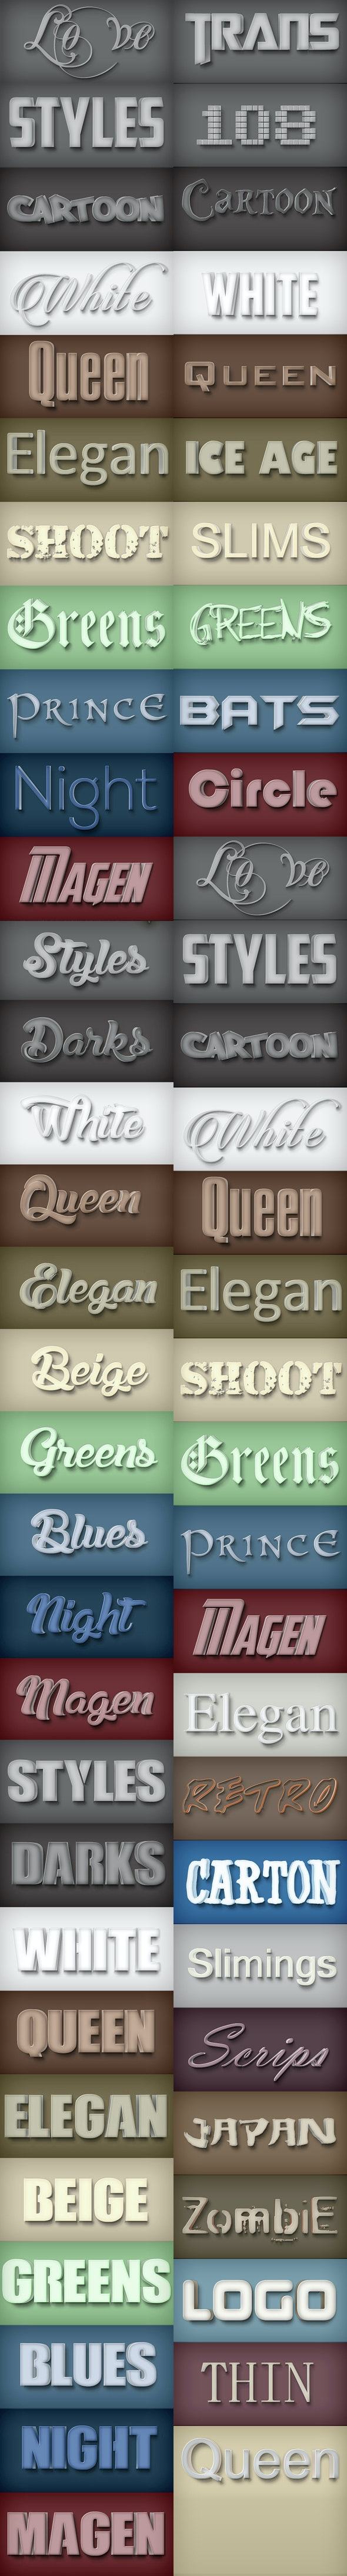 30 Bundle Elegant Styles Vol 1.3 - Styles Photoshop